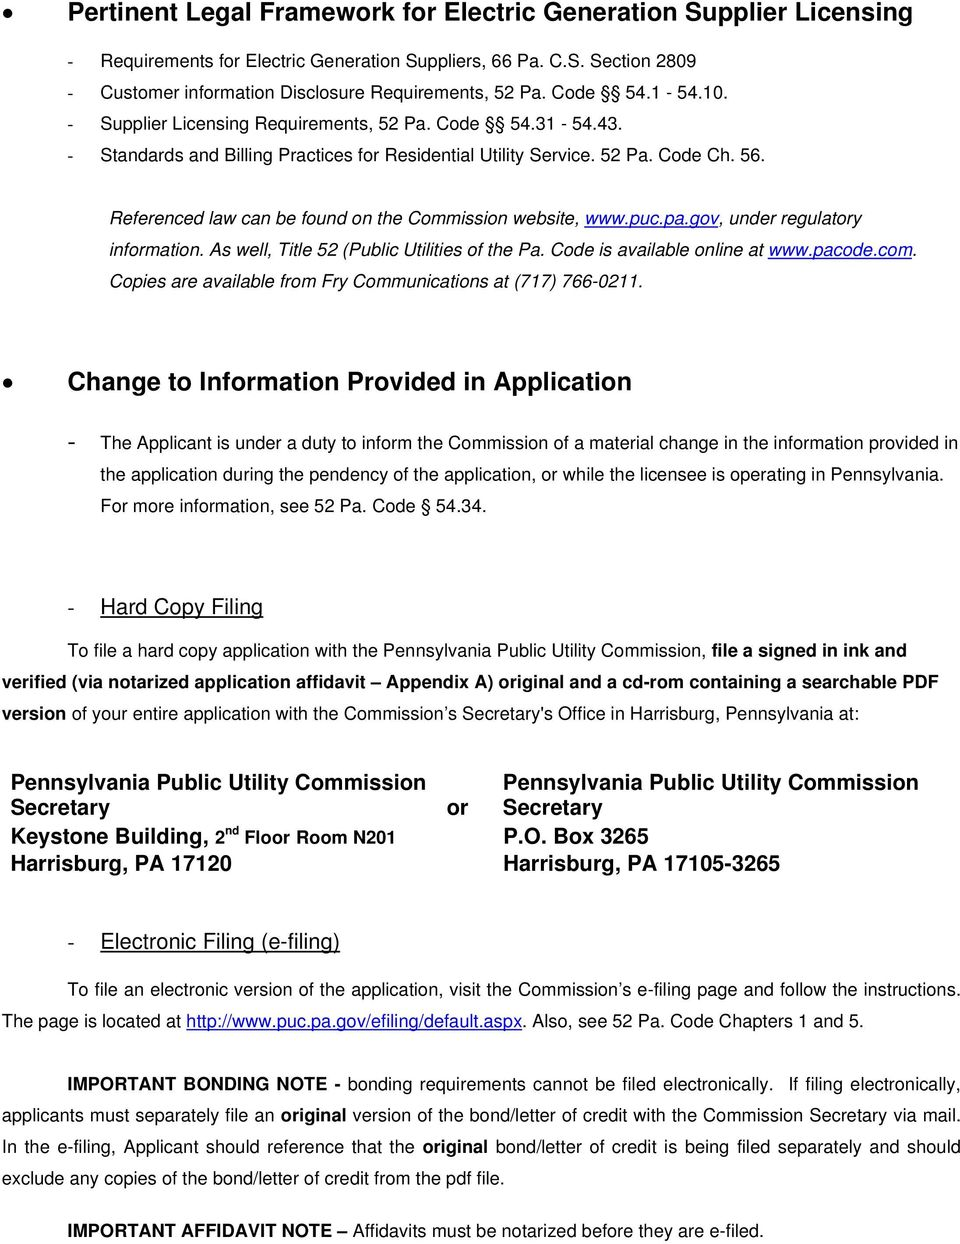 Referenced law can be found on the Commission website, www.puc.pa.gov, under regulatory information. As well, Title 52 (Public Utilities of the Pa. Code is available online at www.pacode.com.